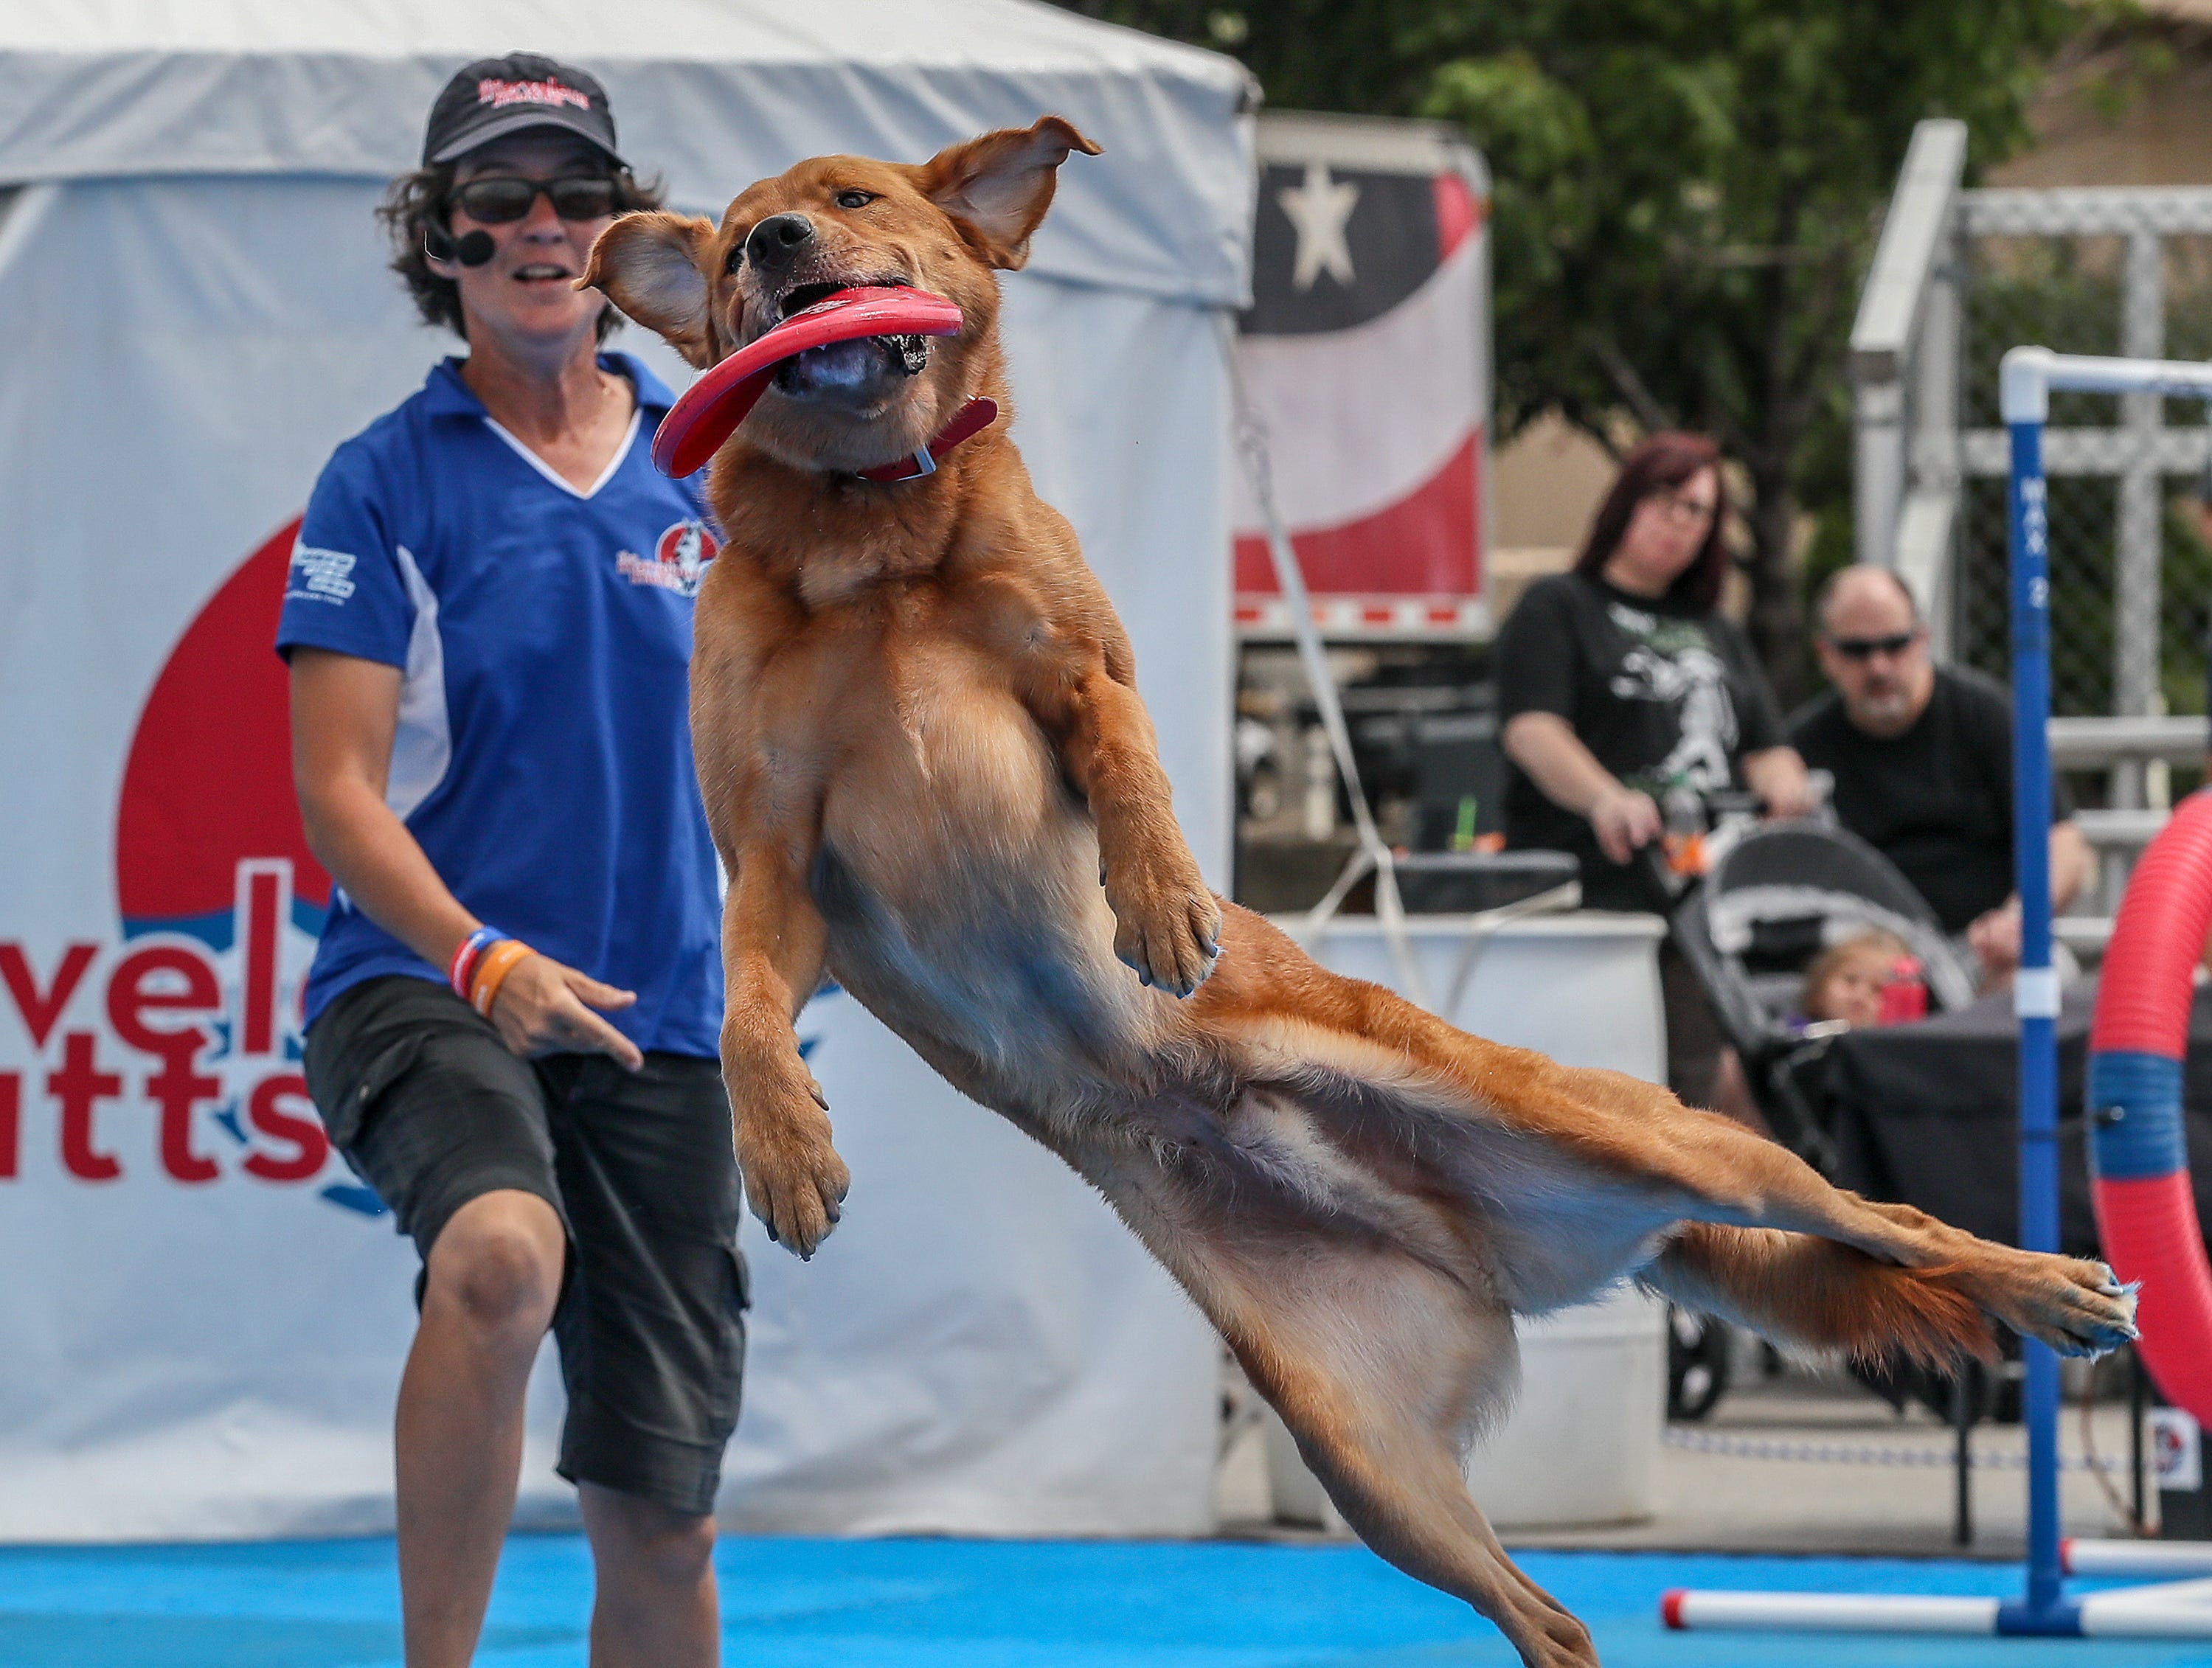 Yoohoo, a Lab mix, catches a disk thrown by Nadja during the Marvelous Mutts show at the Kentucky State Fair.August 17, 2018